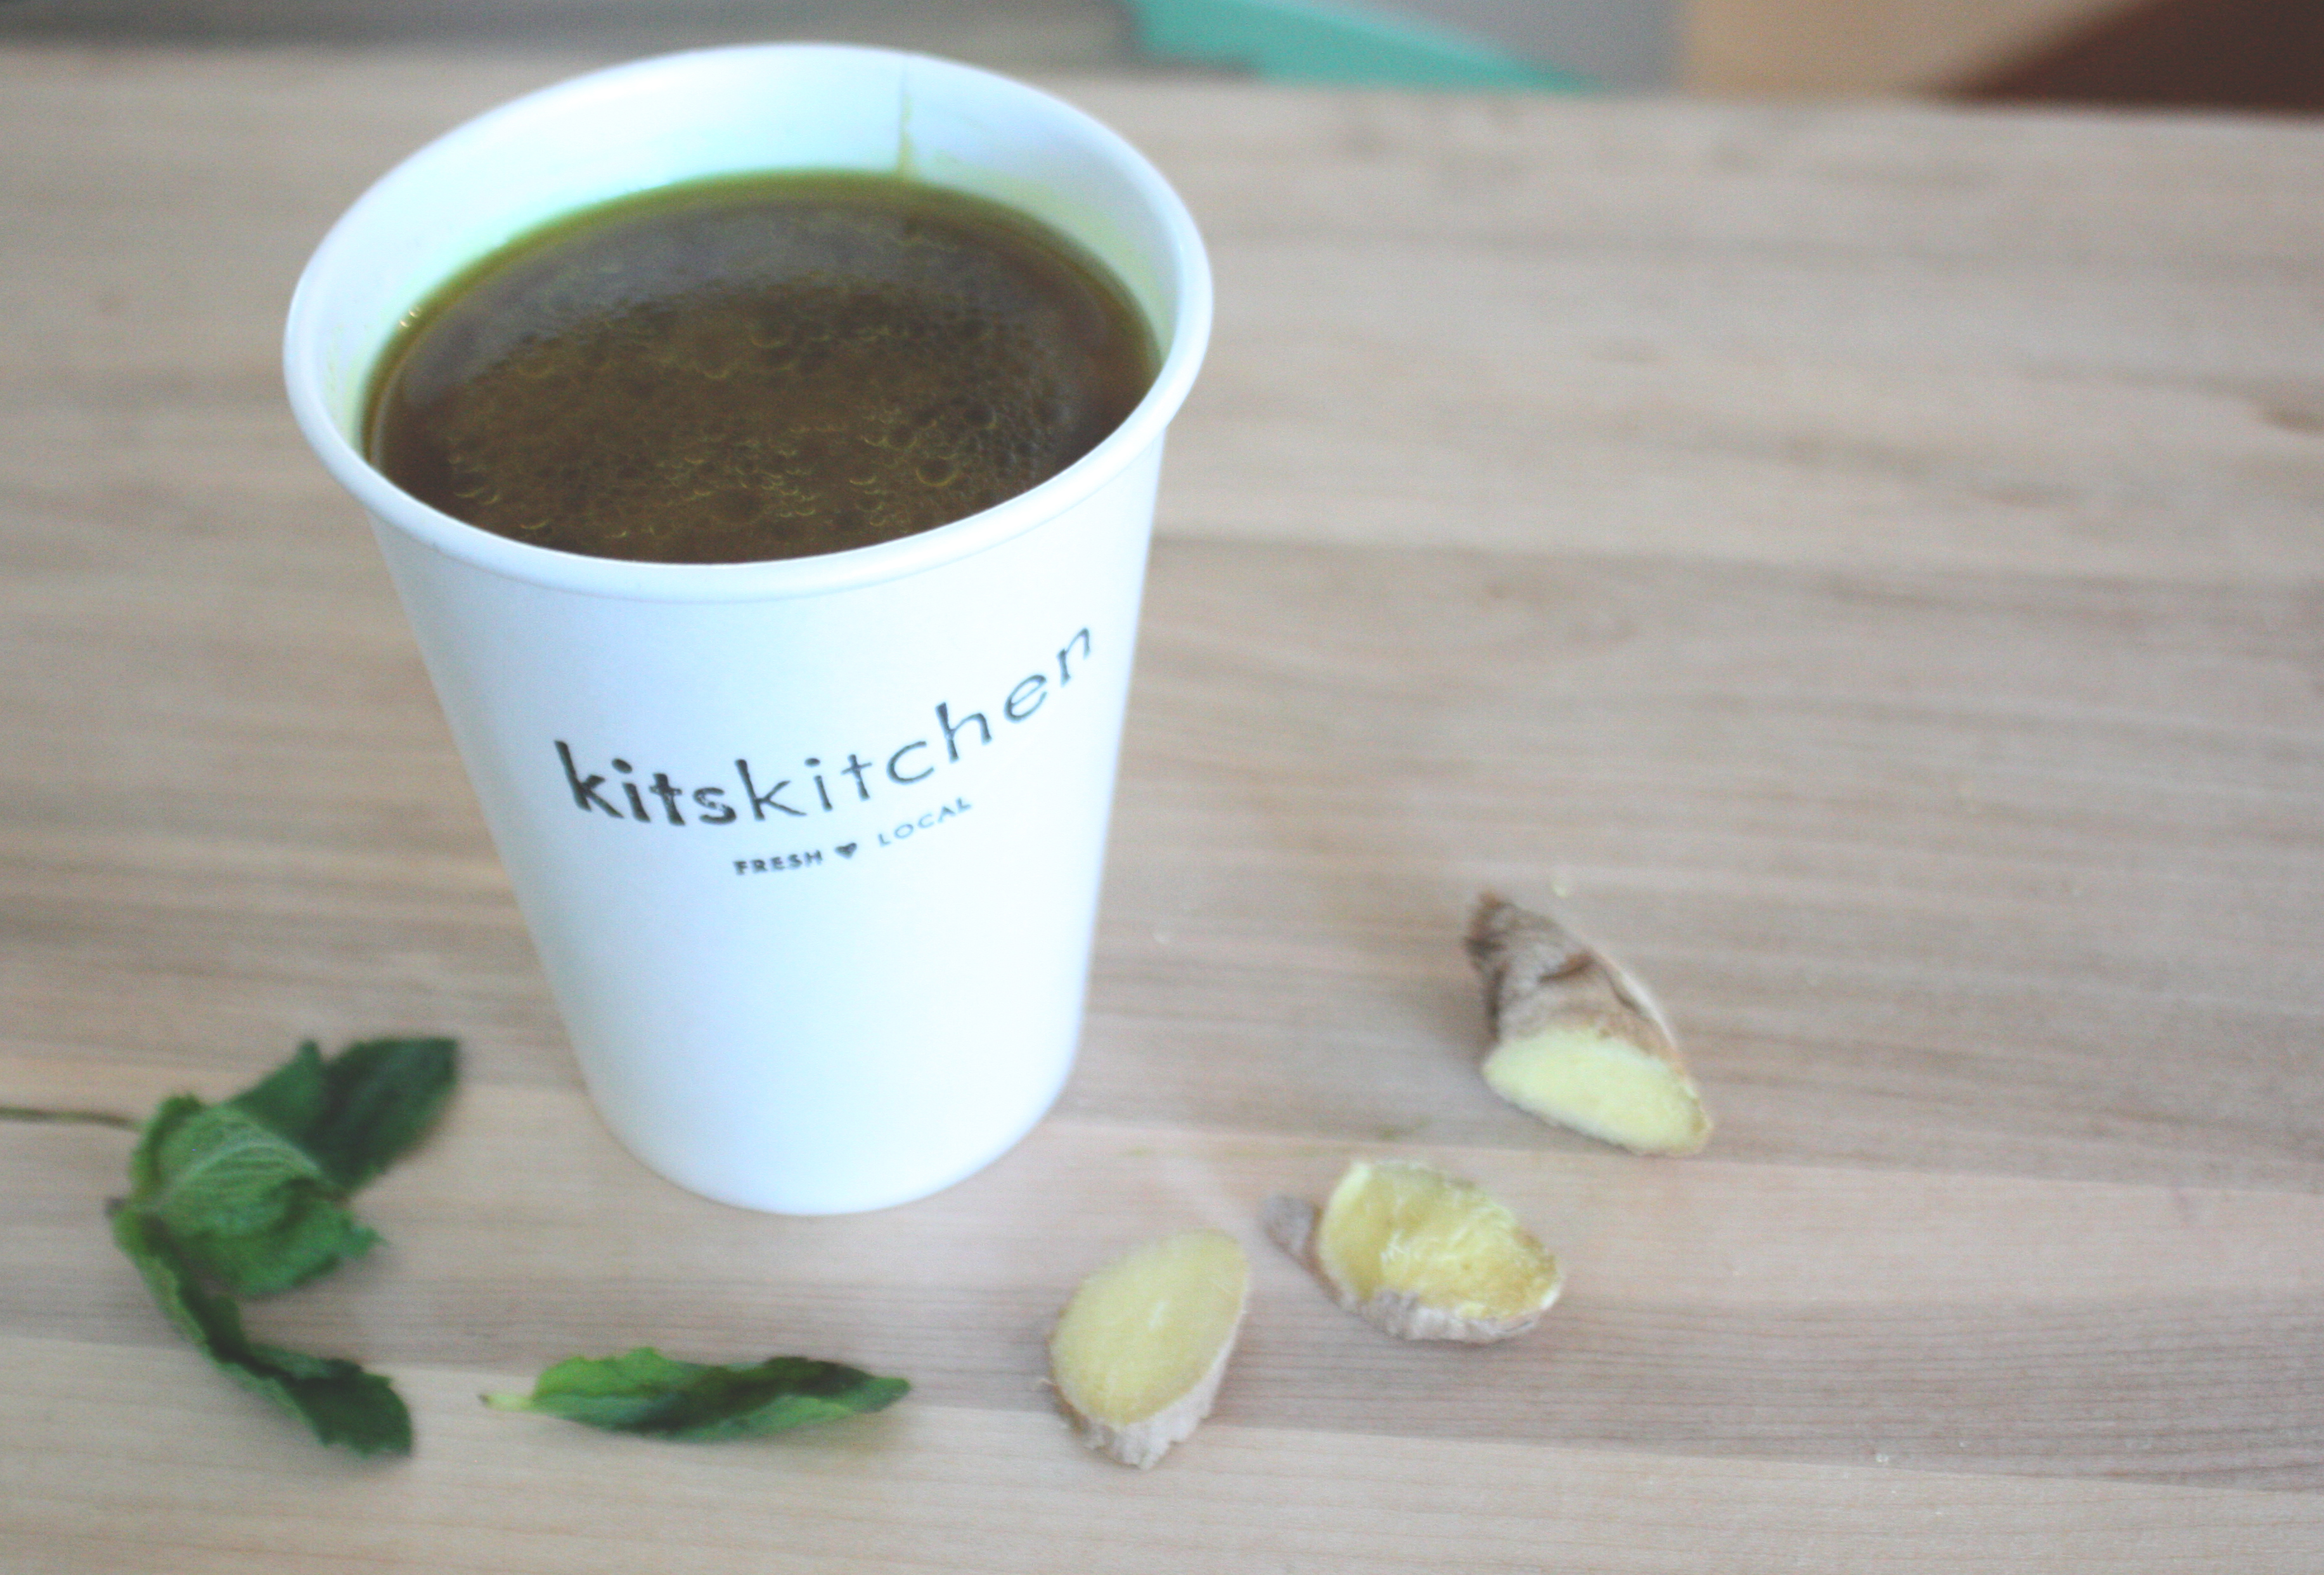 kitskitchen infused beef broth